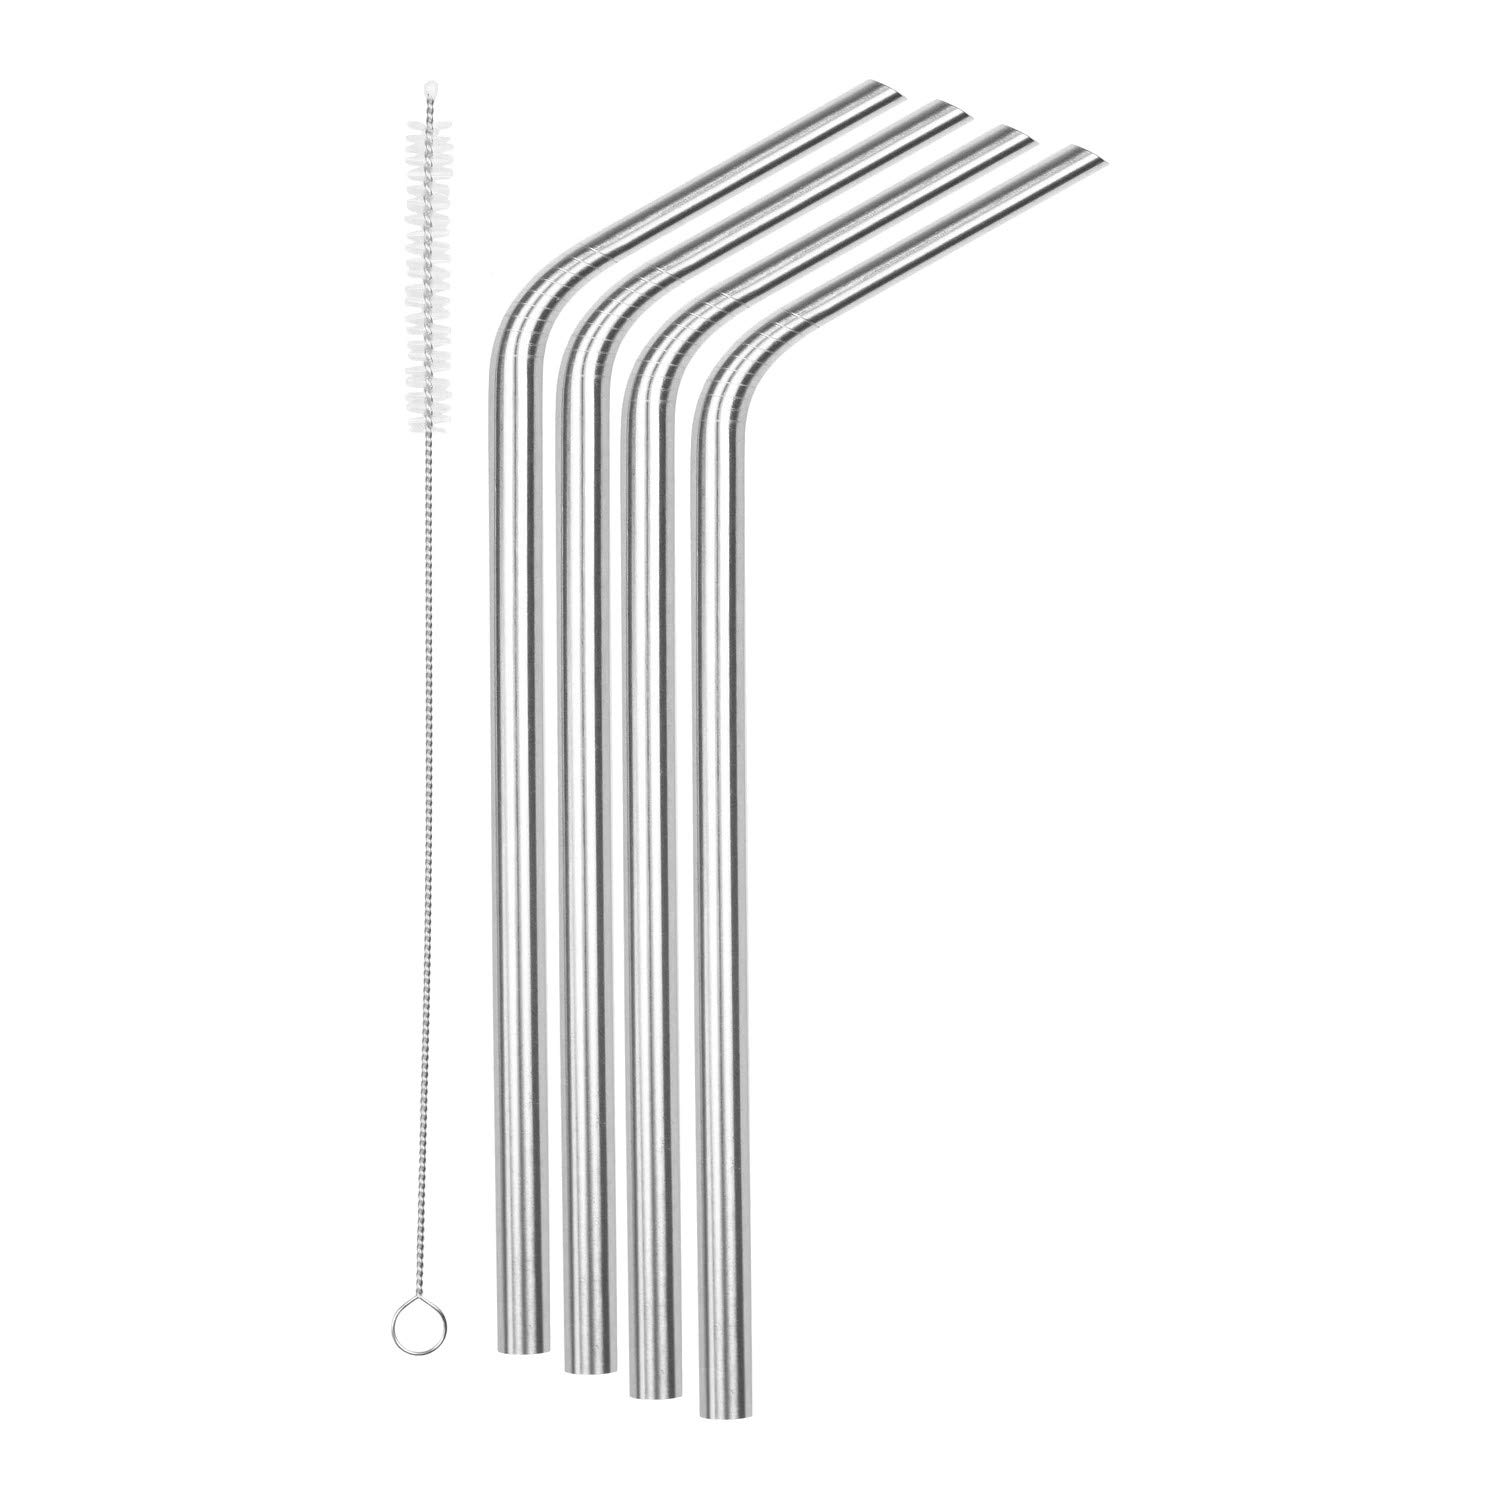 """SipWell 8.5"""" 9.5mm Bent Wide Stainless Steel Drinking Straws, 4-Pack - Dishwasher Safe & Durable Food Grade Metal Straws – Perfect for Smoothies & Cold Beverages"""